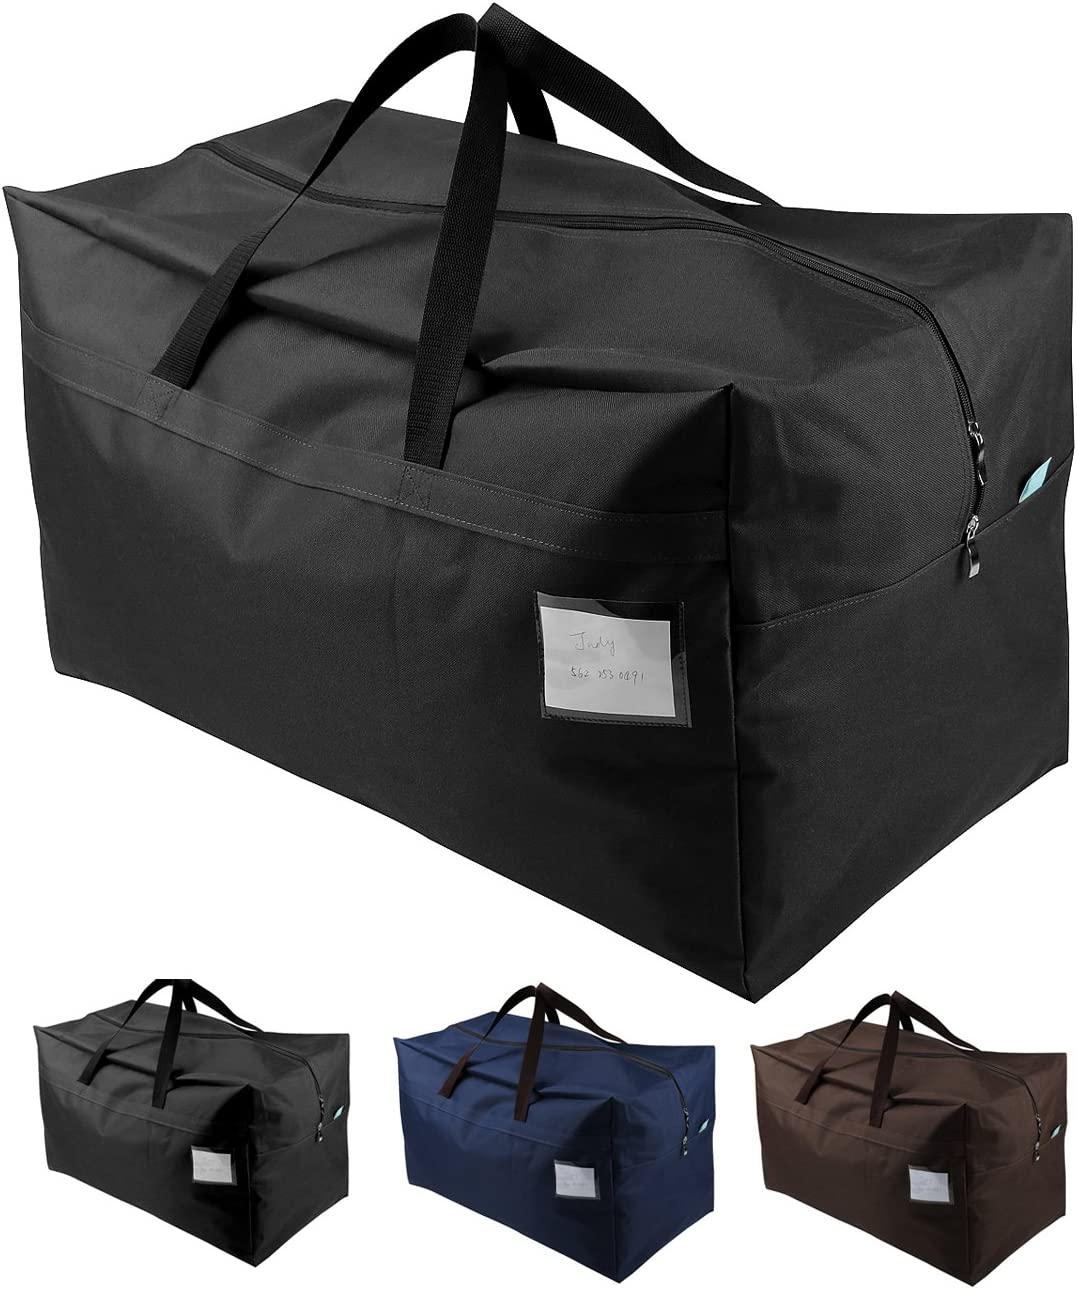 iwill CREATE PRO 70*42*35cm Waterproof Over-sized Christmas, Festival Decorations Organizer Storage Bag, Travel Duffel Bag, Back to School Carry Bag, Washable, Black